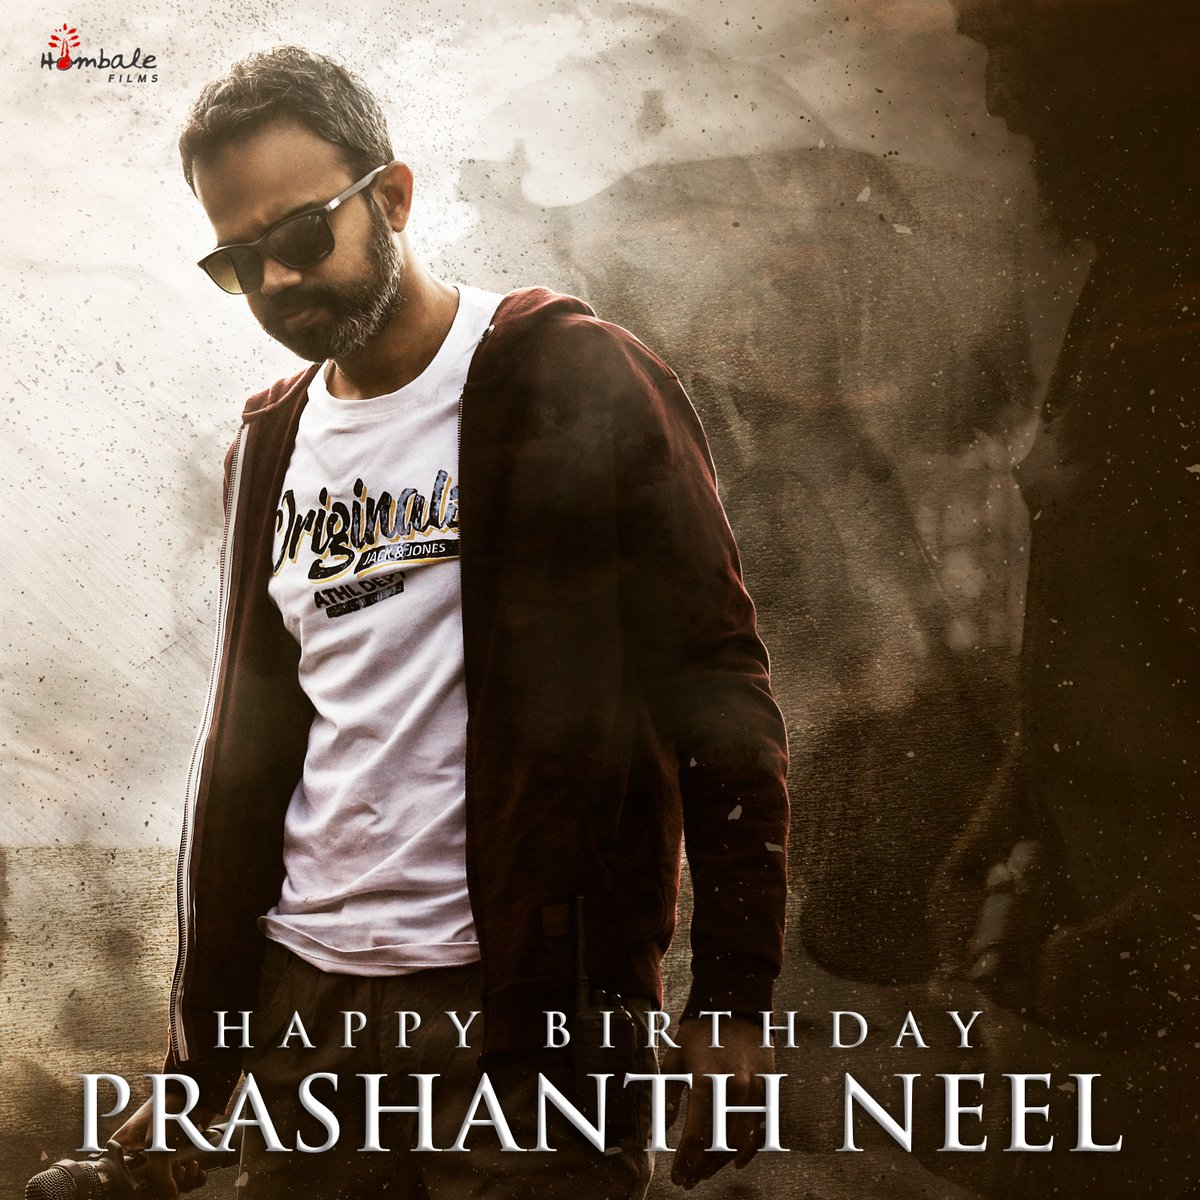 Wishing our Dear Director @prashanth_neel a very Happy Birthday ❤️ We're eagerly waiting for #KGFChapter2 :)  #HBDPrashanthNeel https://t.co/nkW6sOFG2I